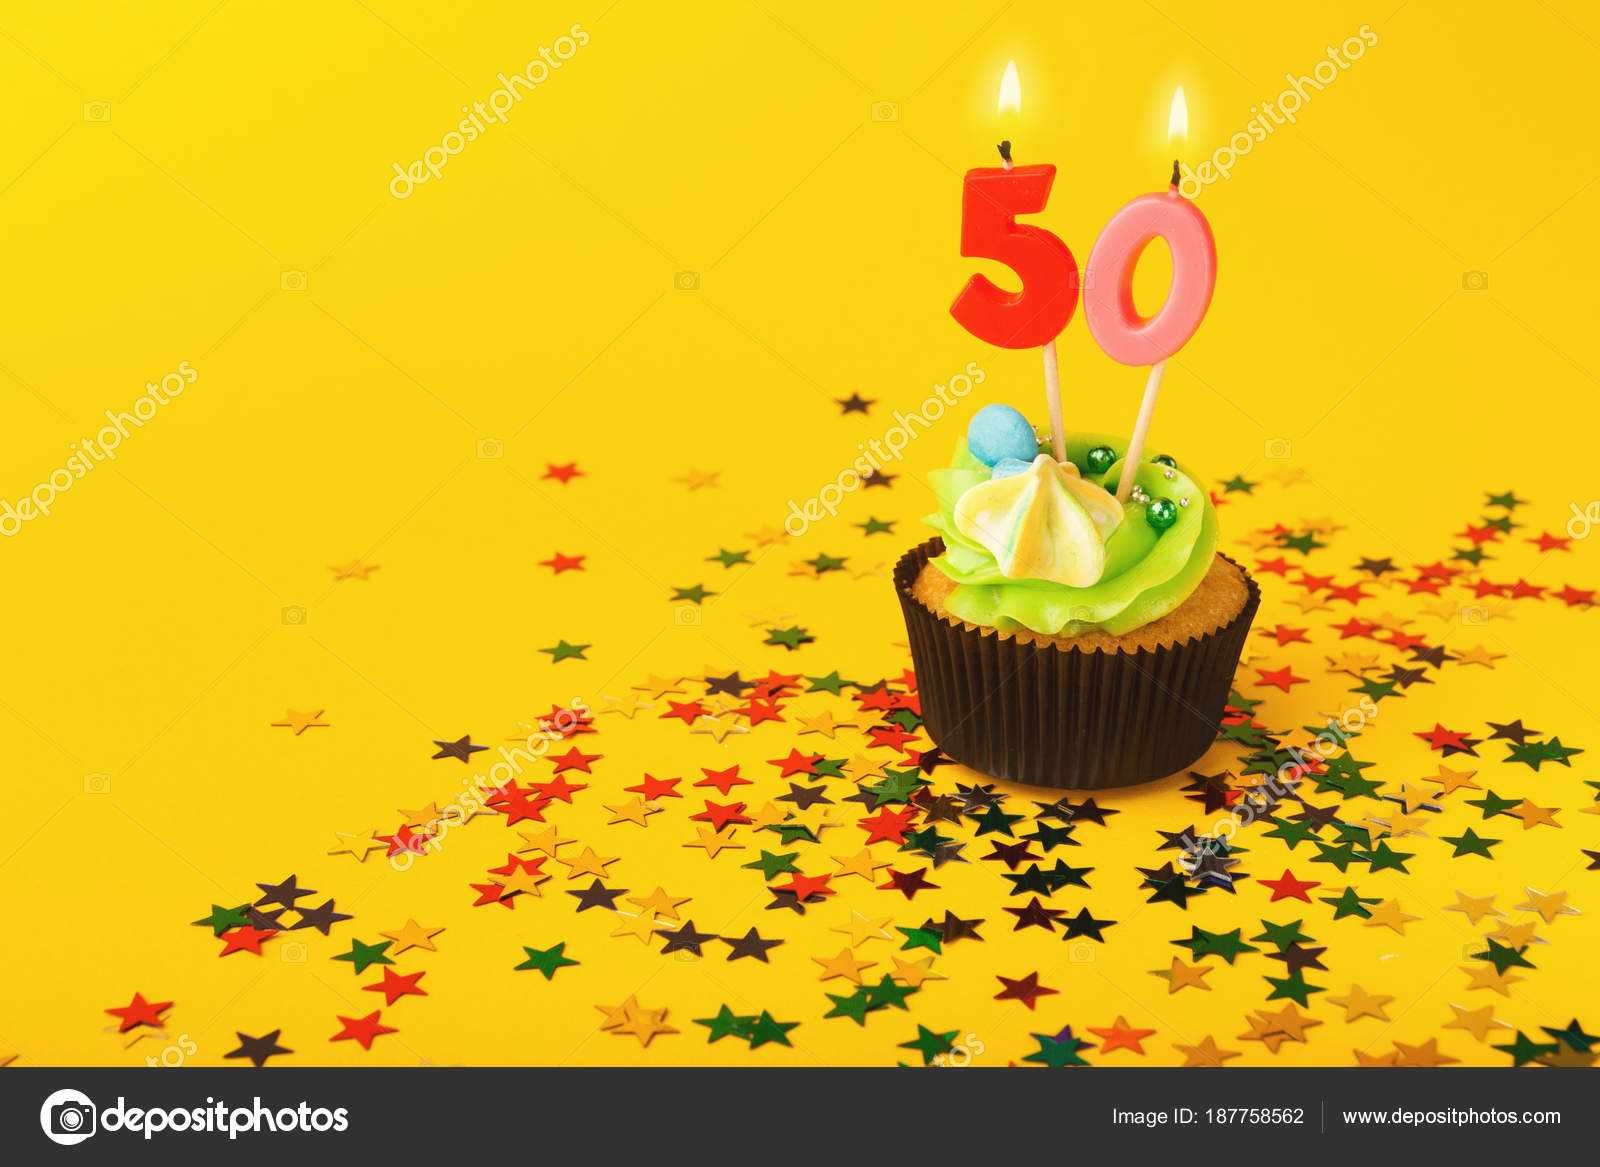 50th Birthday Cupcake With Candle And Sprinkles On Yellow Background Card Mockup Copy Space Party Holiday Concept Photo By